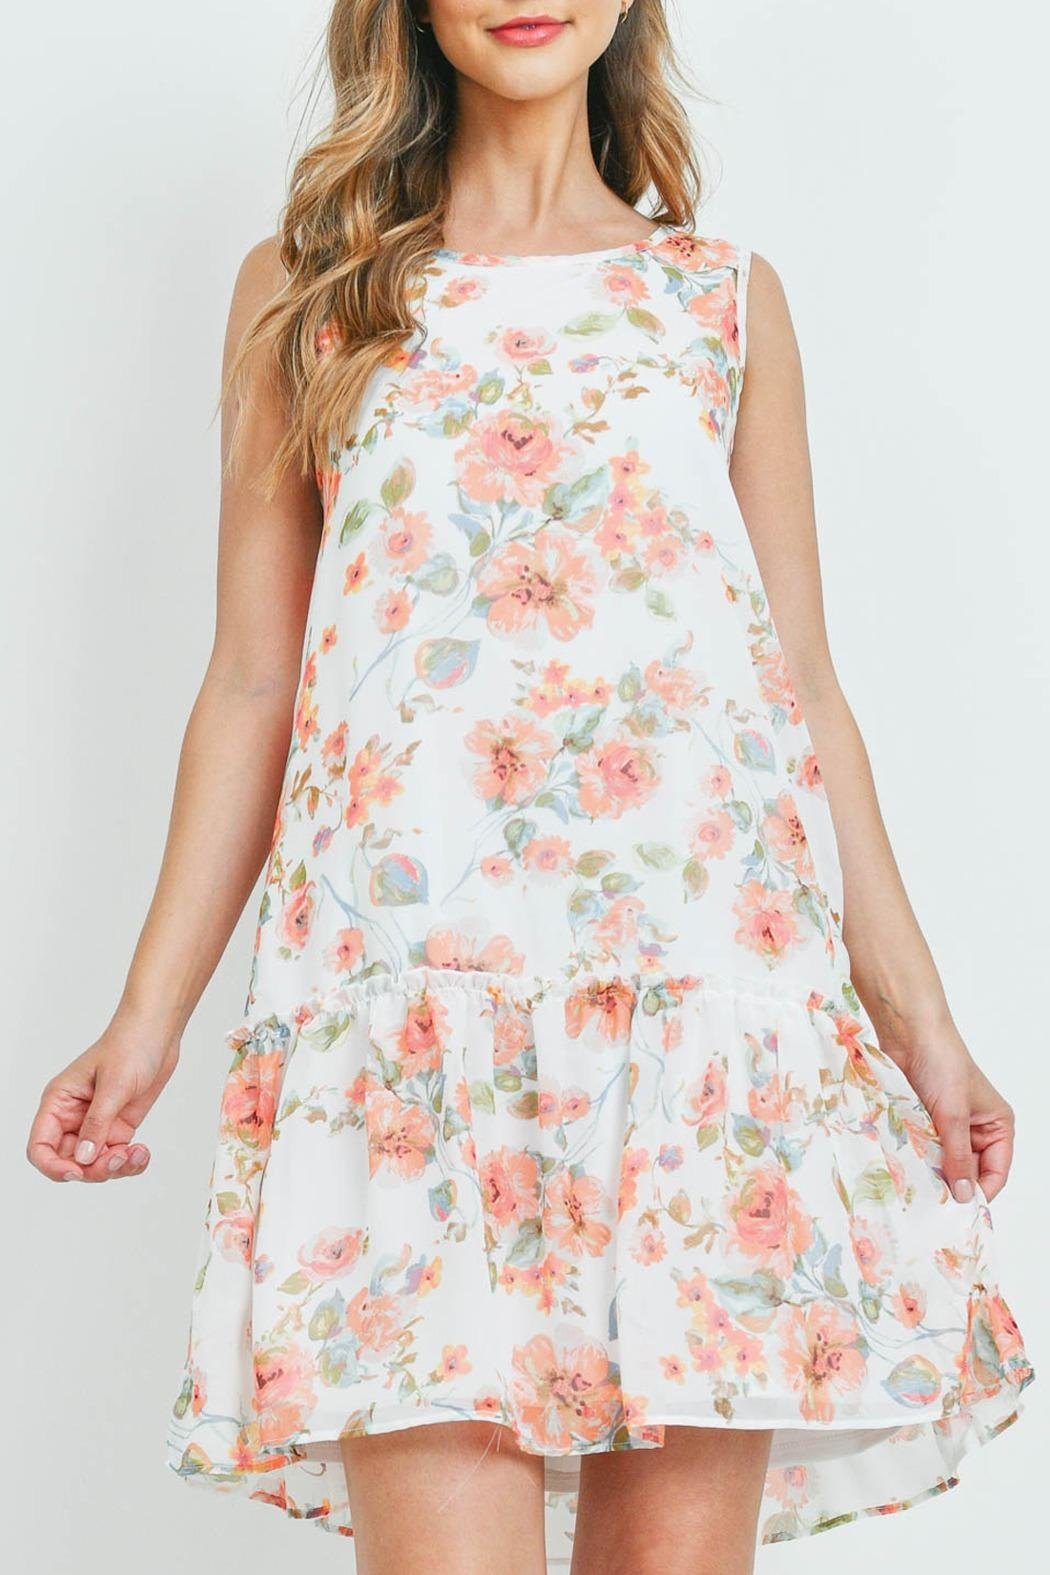 Riah Fashion Floral-Print-Sleeveless-Ruffle-Hem-Dress-With-Inside Lining - Front Cropped Image